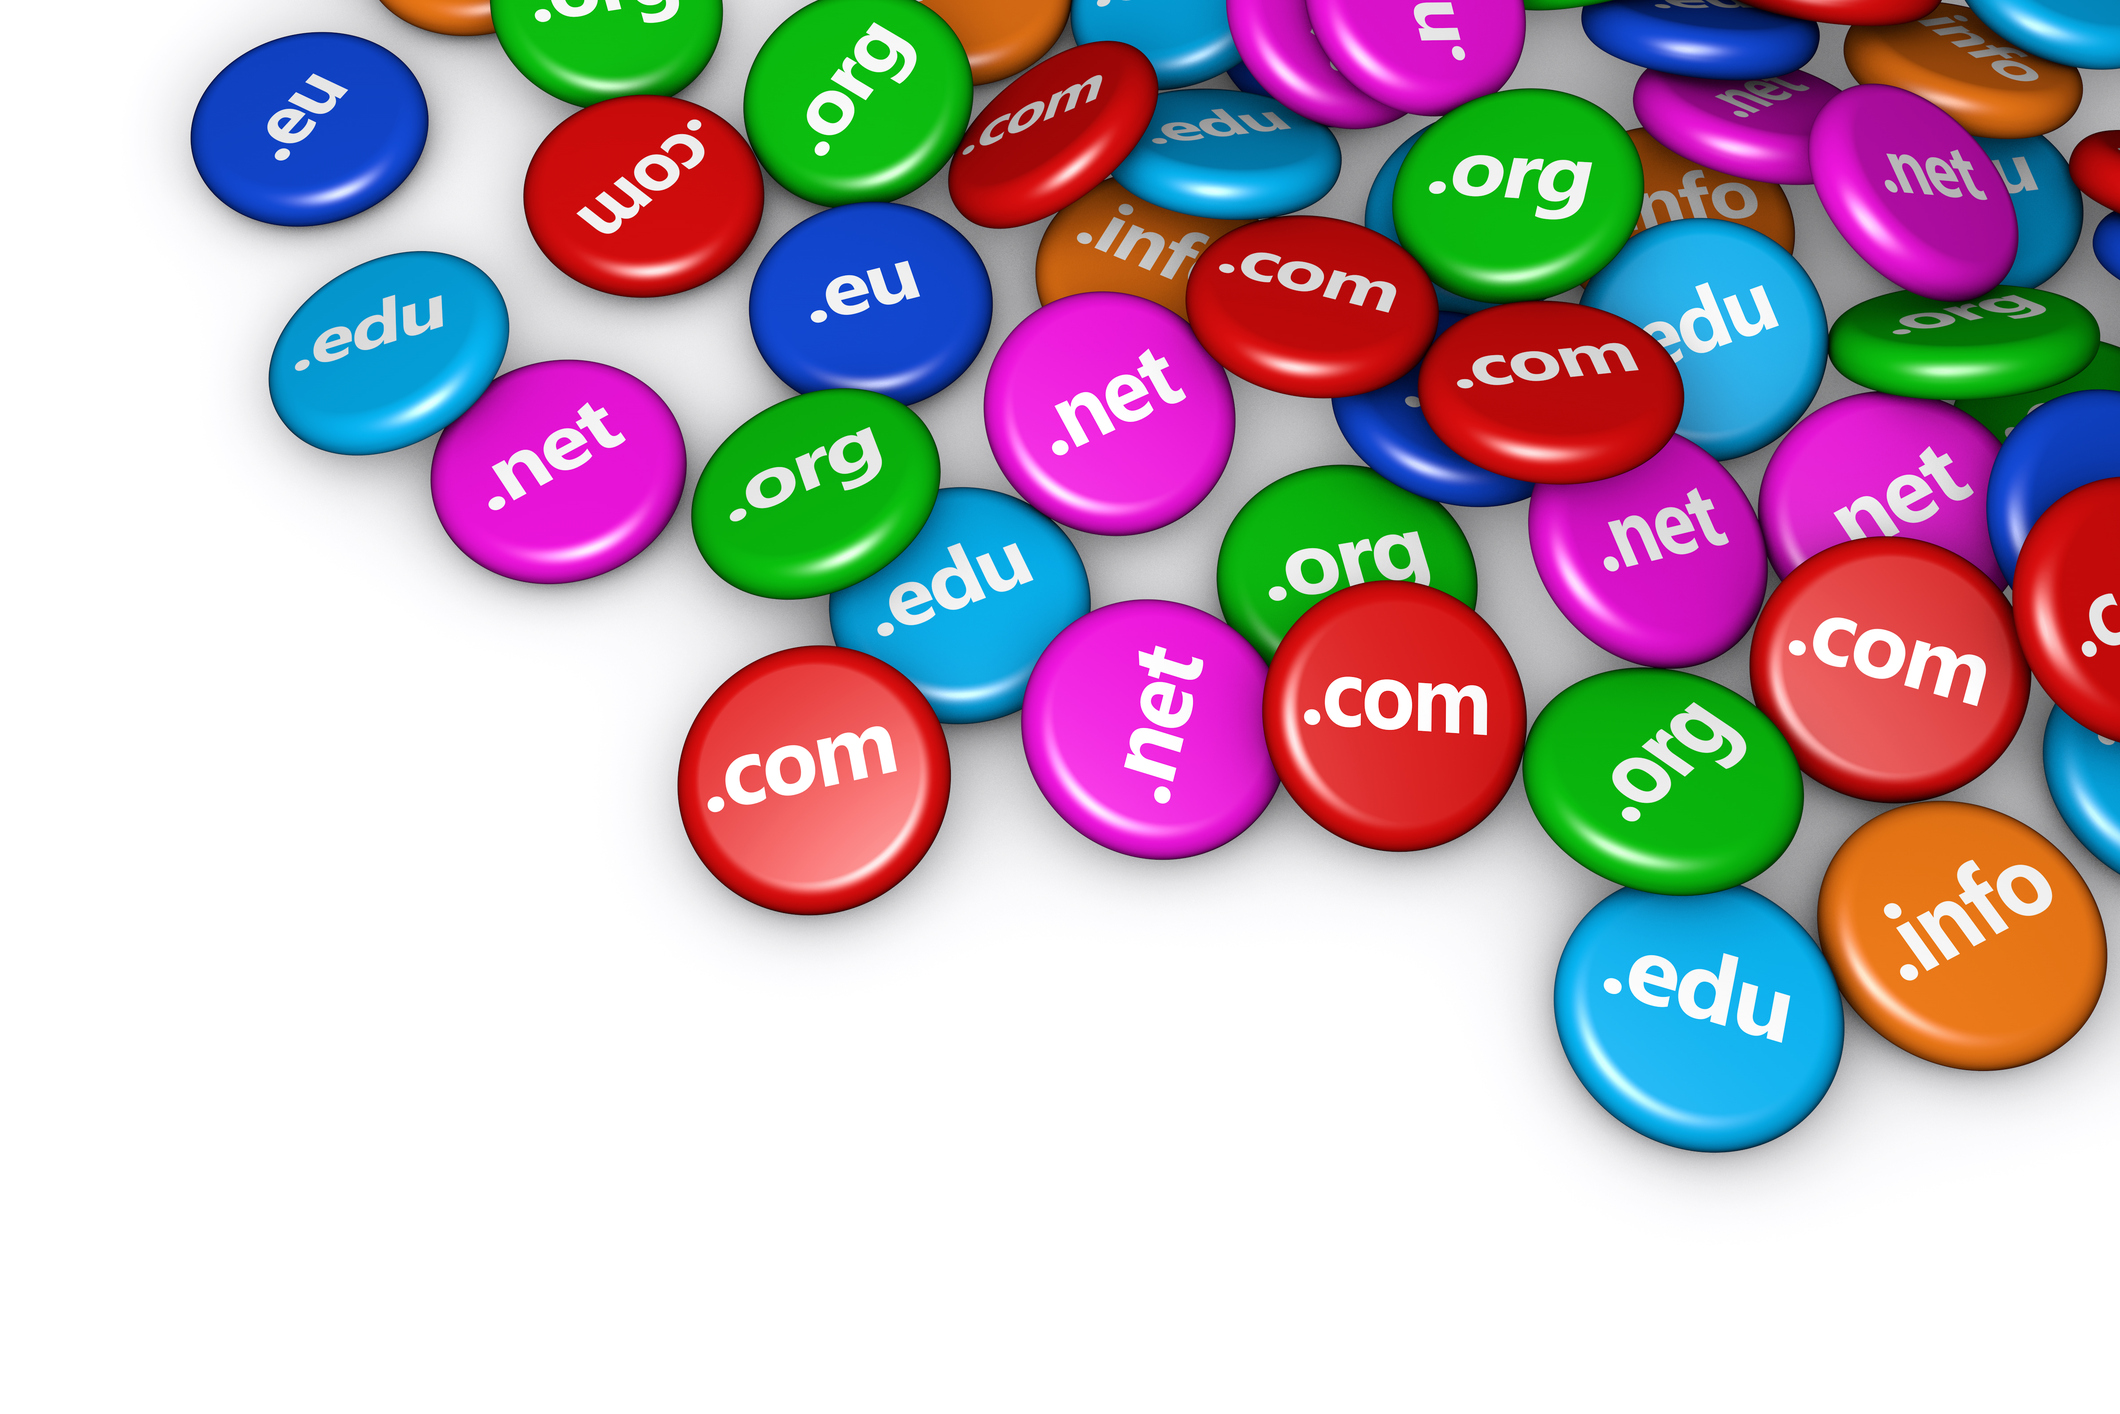 Domains &Hosting  Complete range of domain names available with varied hosting options including DNS controls and SQL services.